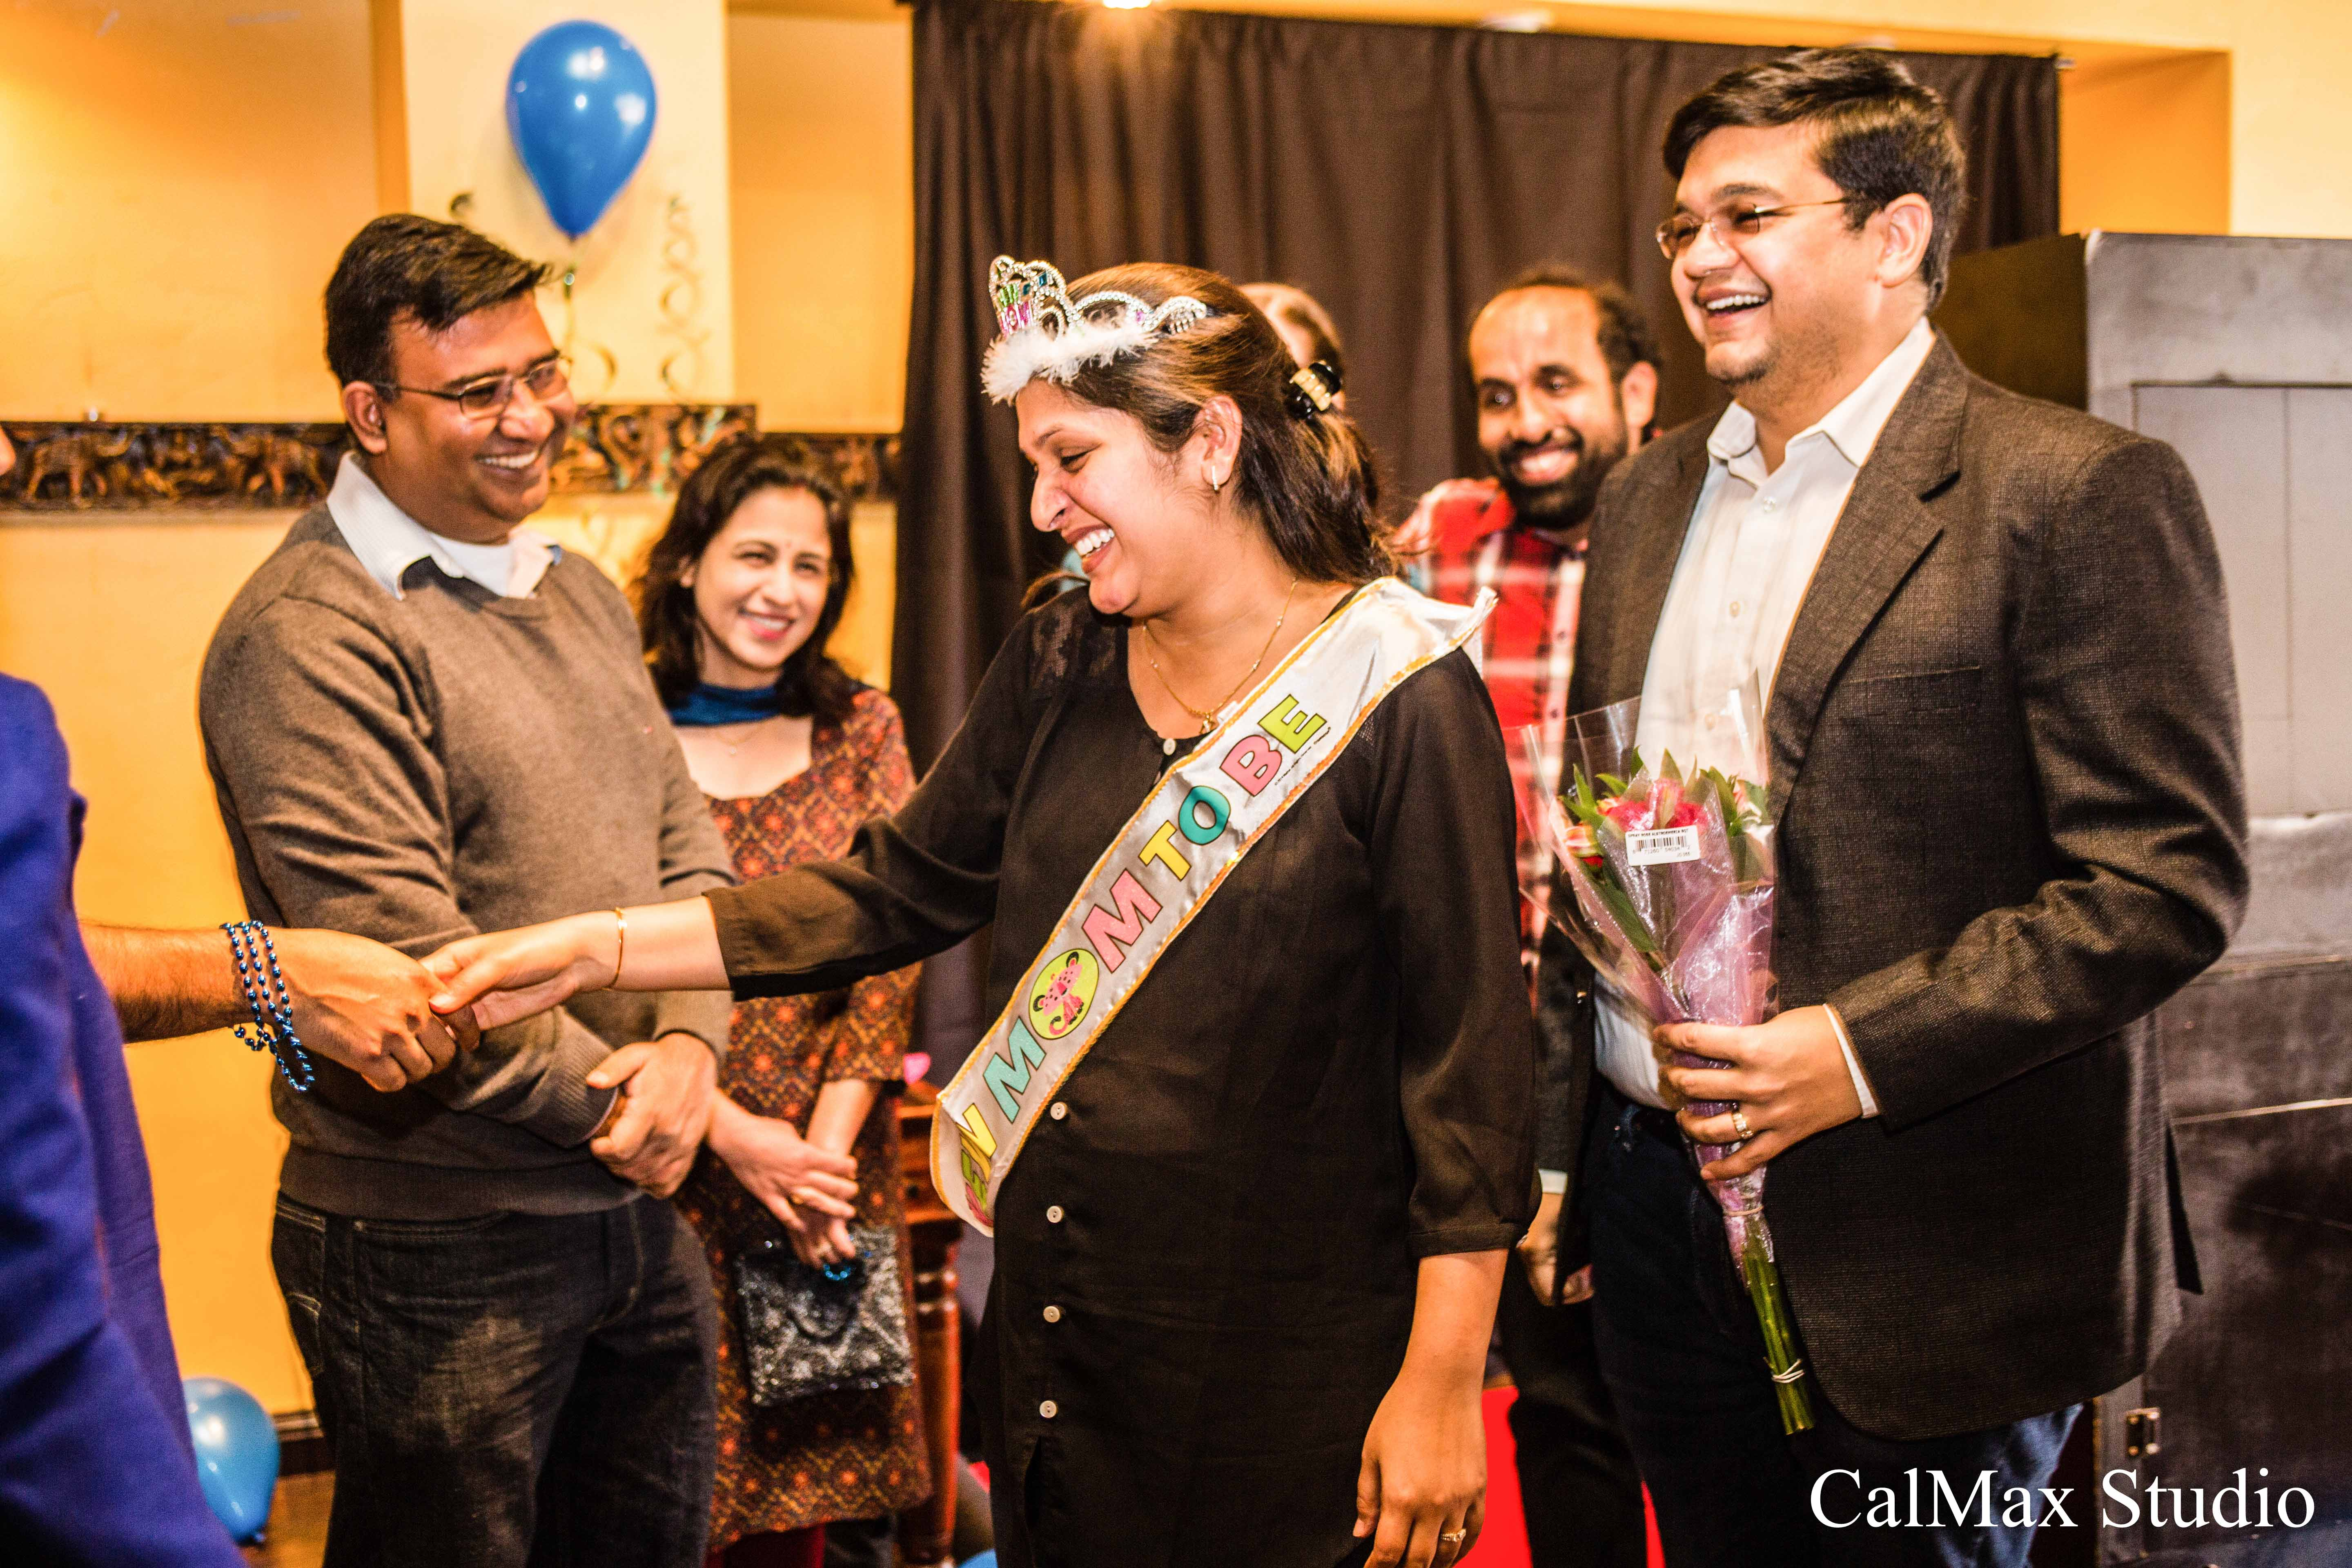 Baby Shower party in Sunnyvale/ Baby shower photography – CalMax Studio